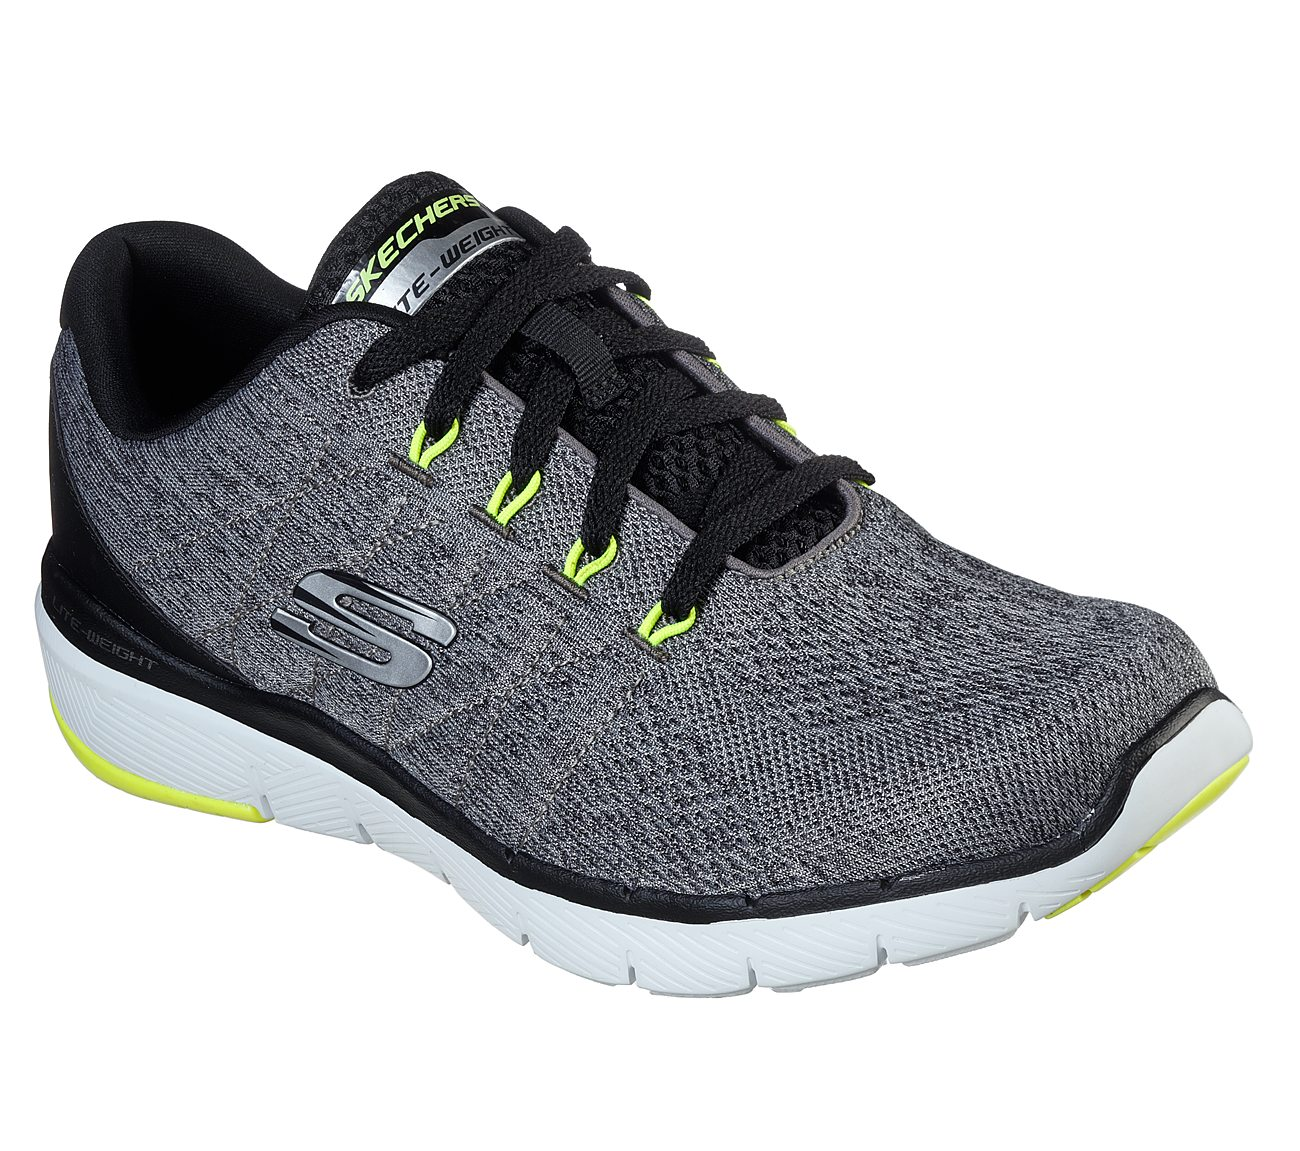 c21eb6a2bfe9 Buy SKECHERS Flex Advantage 3.0 - Stally Sport Shoes only  70.00